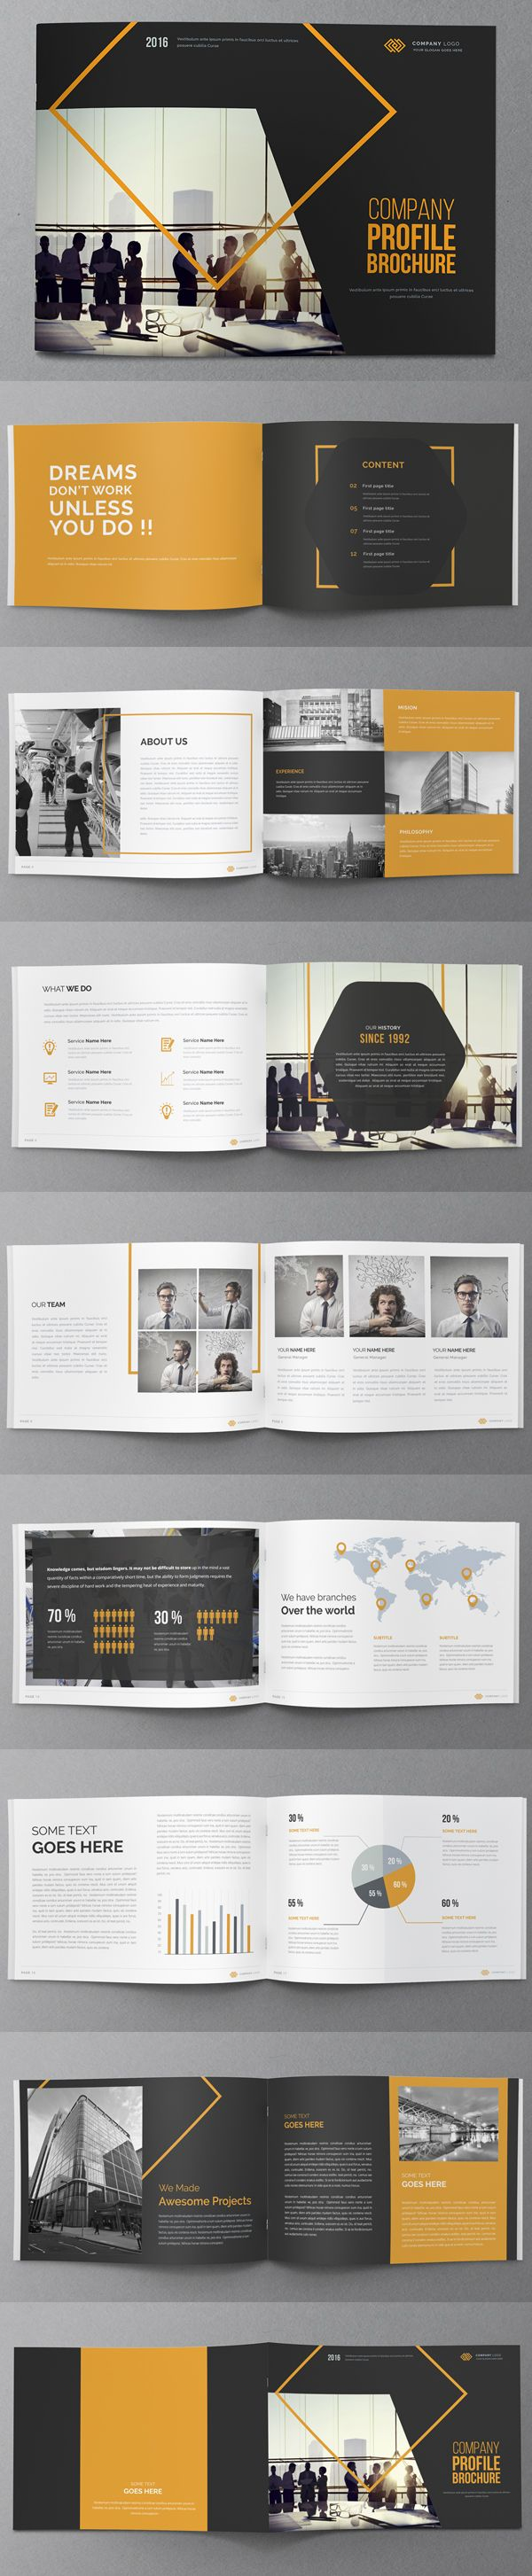 get your attractive and professional real estate brochure design within 24 hours https - Booklet Design Ideas